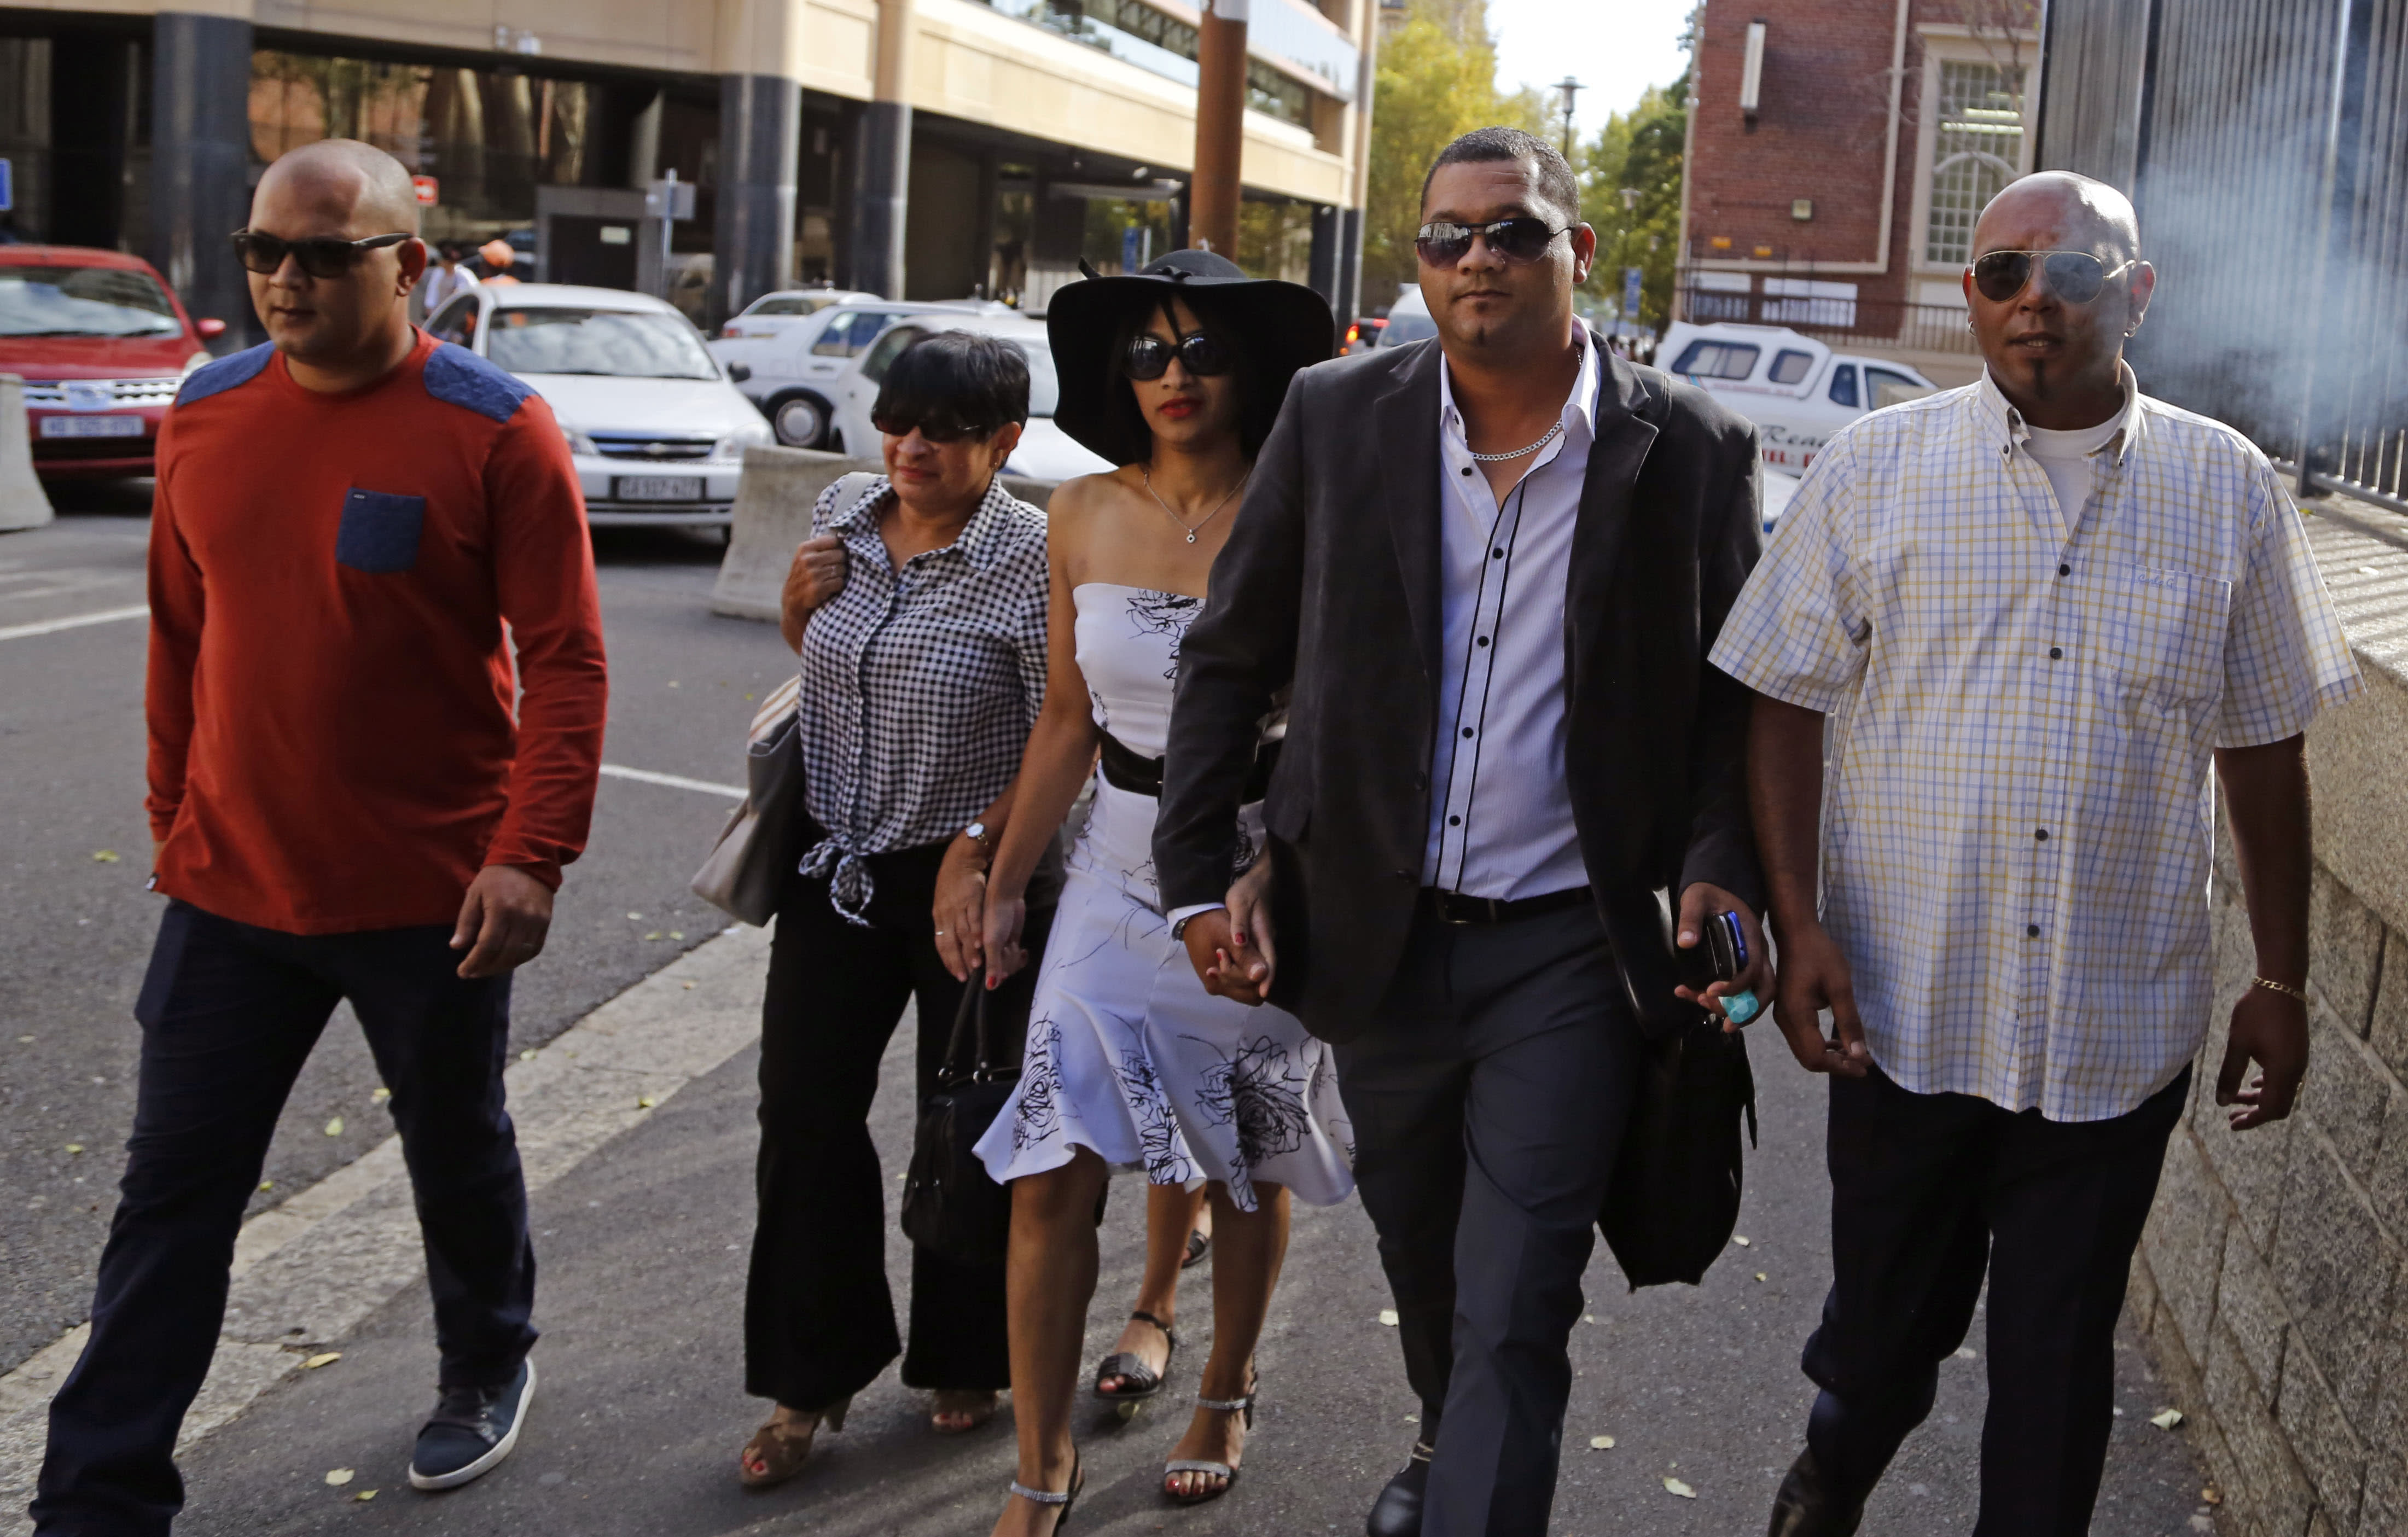 South African woman accused of kidnapping baby gets bail